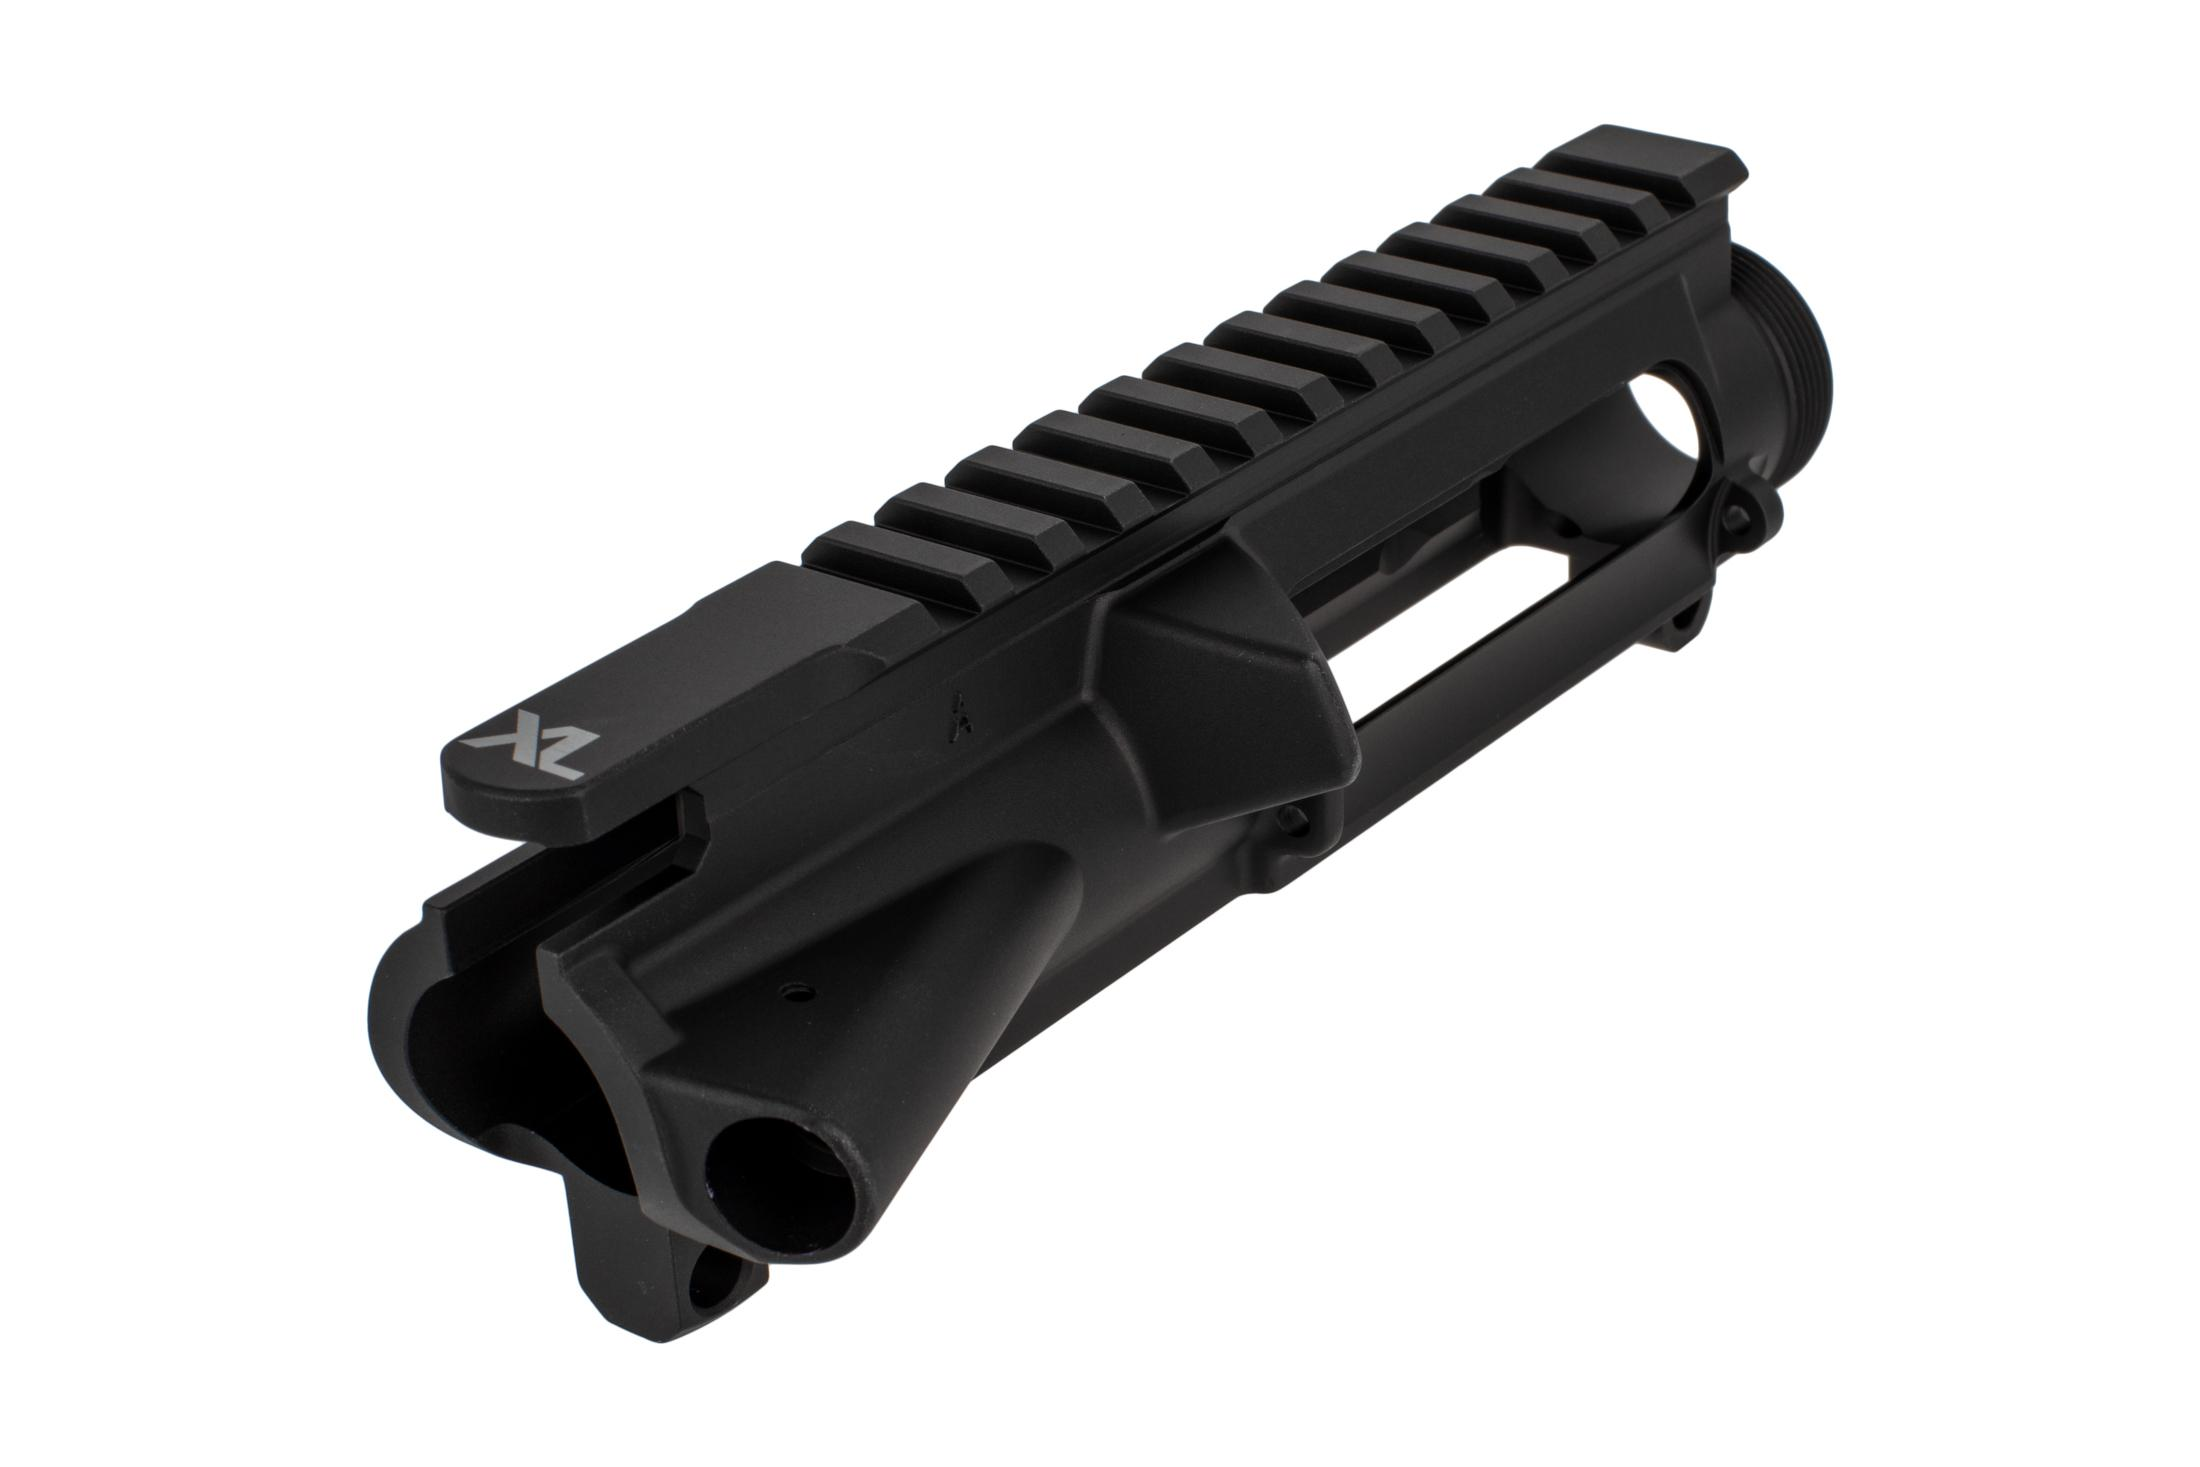 The Aero Precision XL AR15 stripped upper receiver features a black hardcoat anodized finish